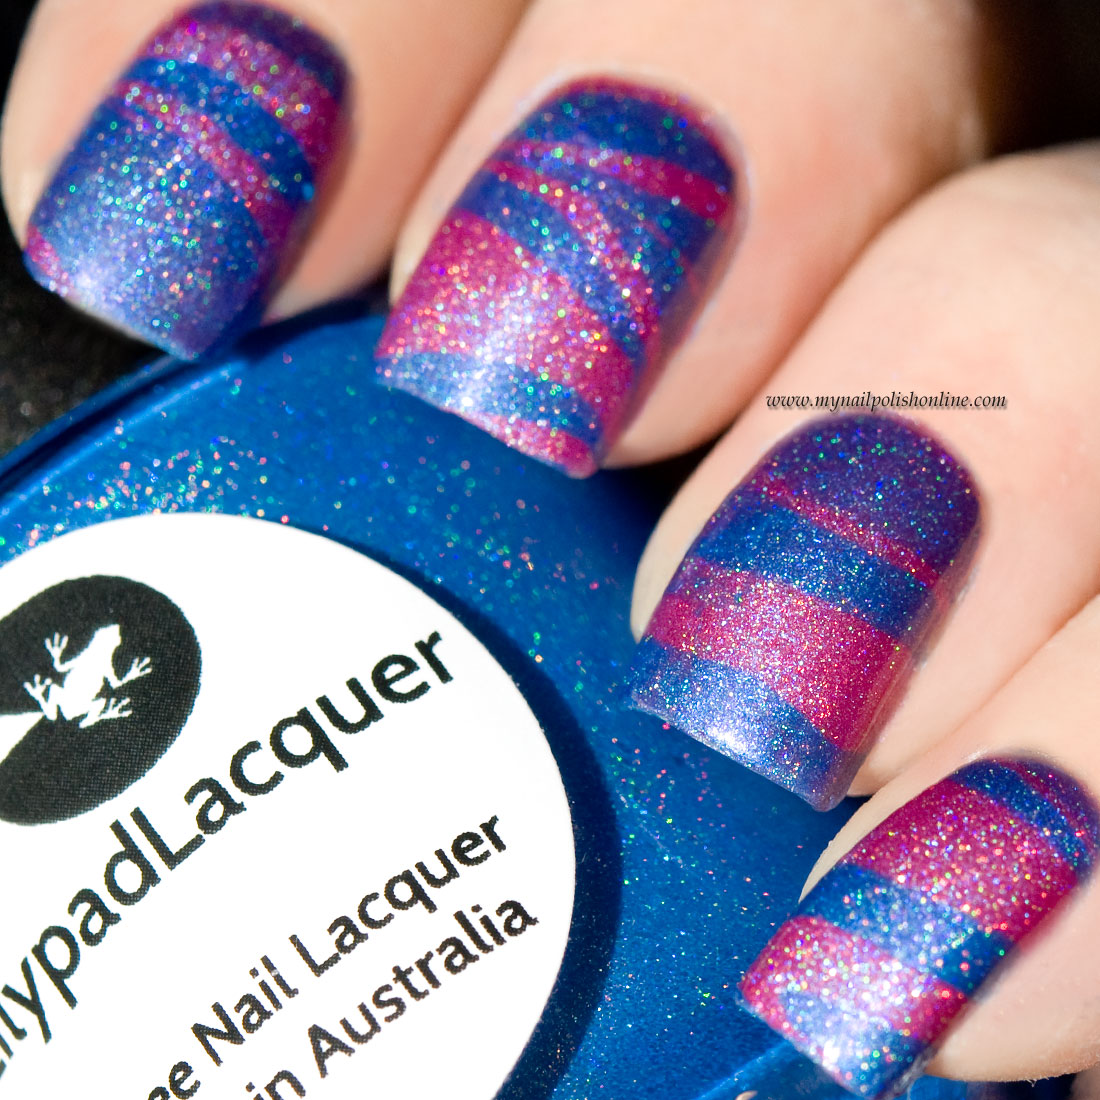 Water Marble Nail Polish Brands India: Water Marbling With Lilypad Lacquers